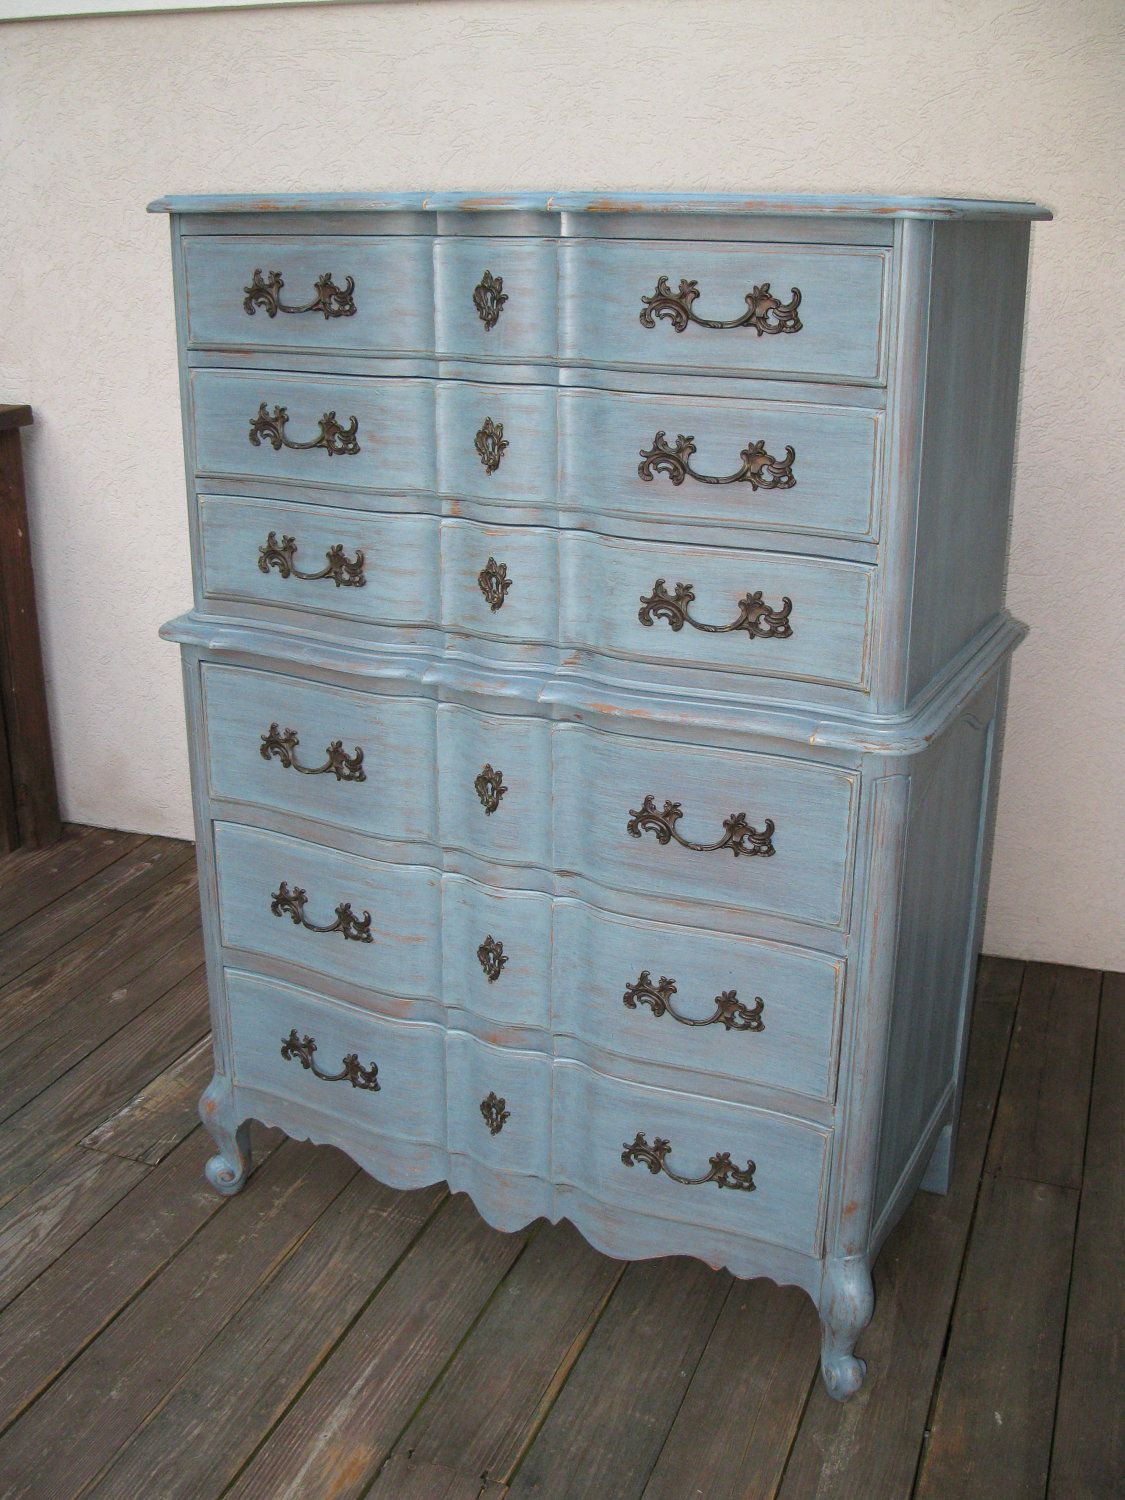 Chic And Shabby Blue Grey Tall Dresser Or Bedroom Set Etsy Shabby Chic Dresser Blue Dresser Tall Dresser [ 1500 x 1125 Pixel ]